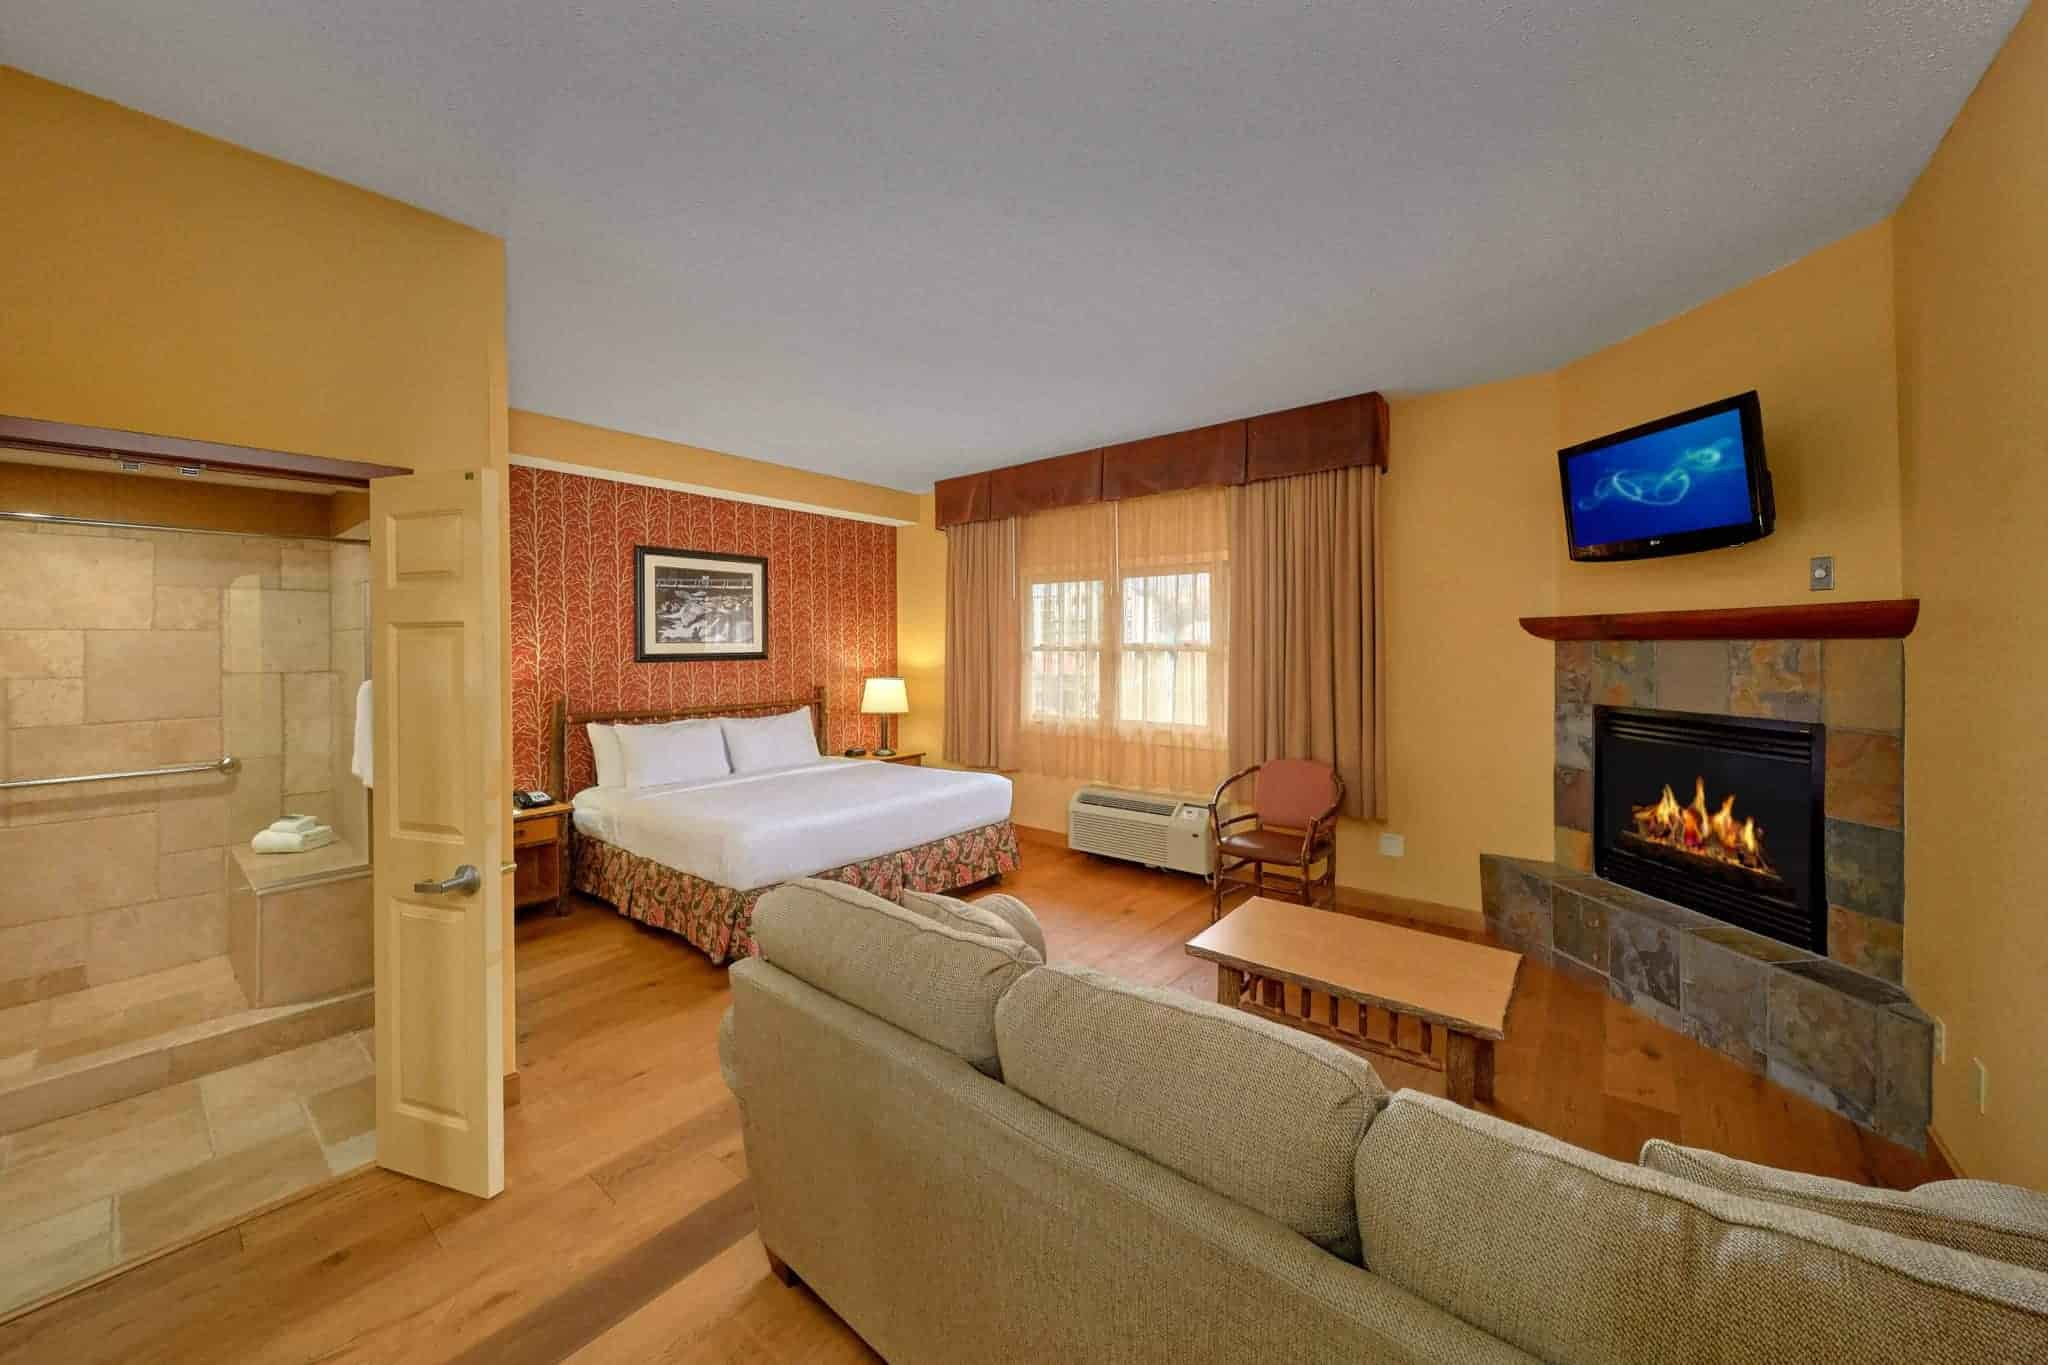 King Junior Suite in Bearskin Lodge hotel in Gatlinburg